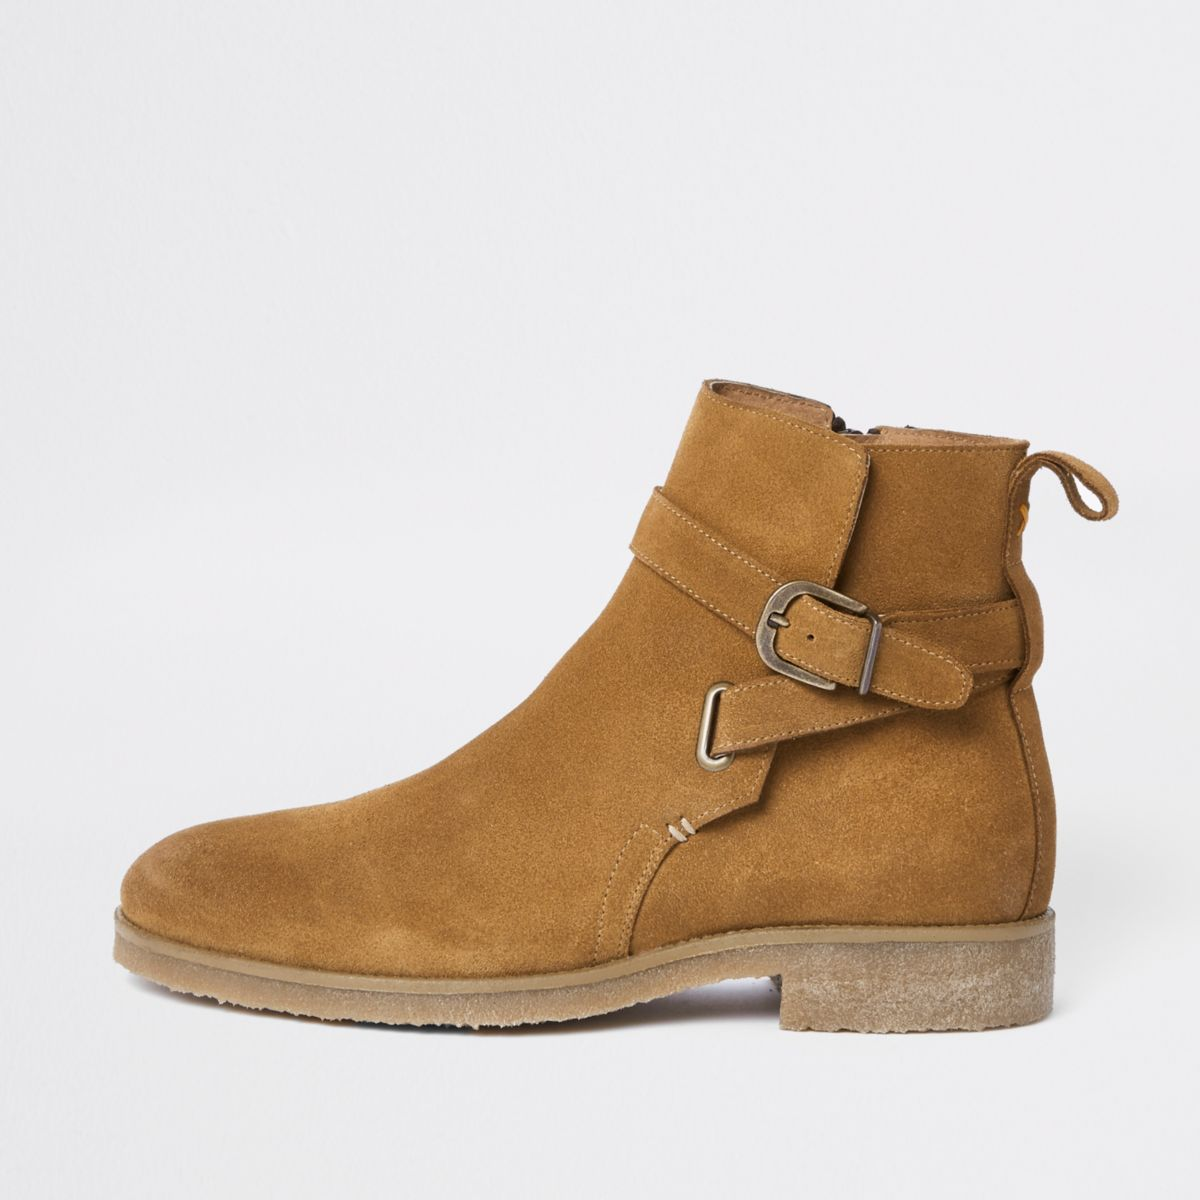 Tan suede buckle strap chelsea boots